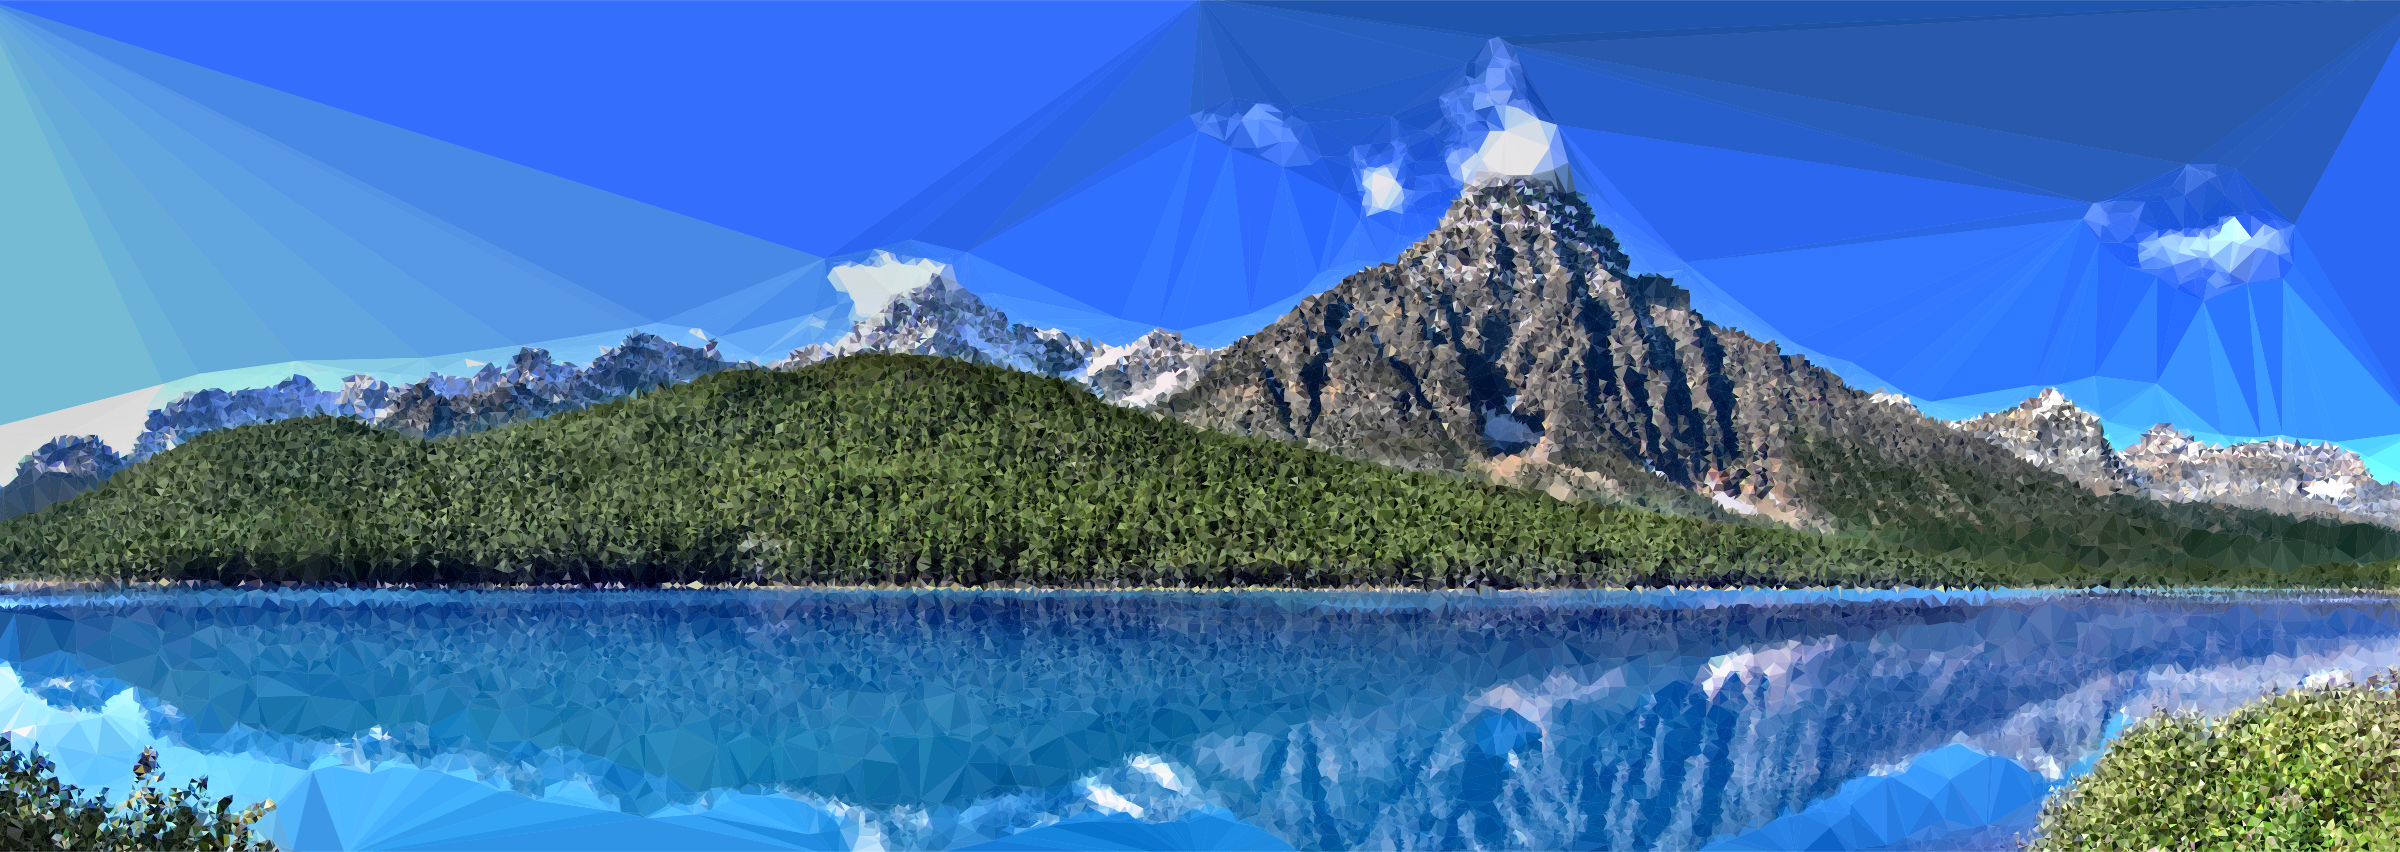 Lake clipart landscape canada. Low poly canadian nature